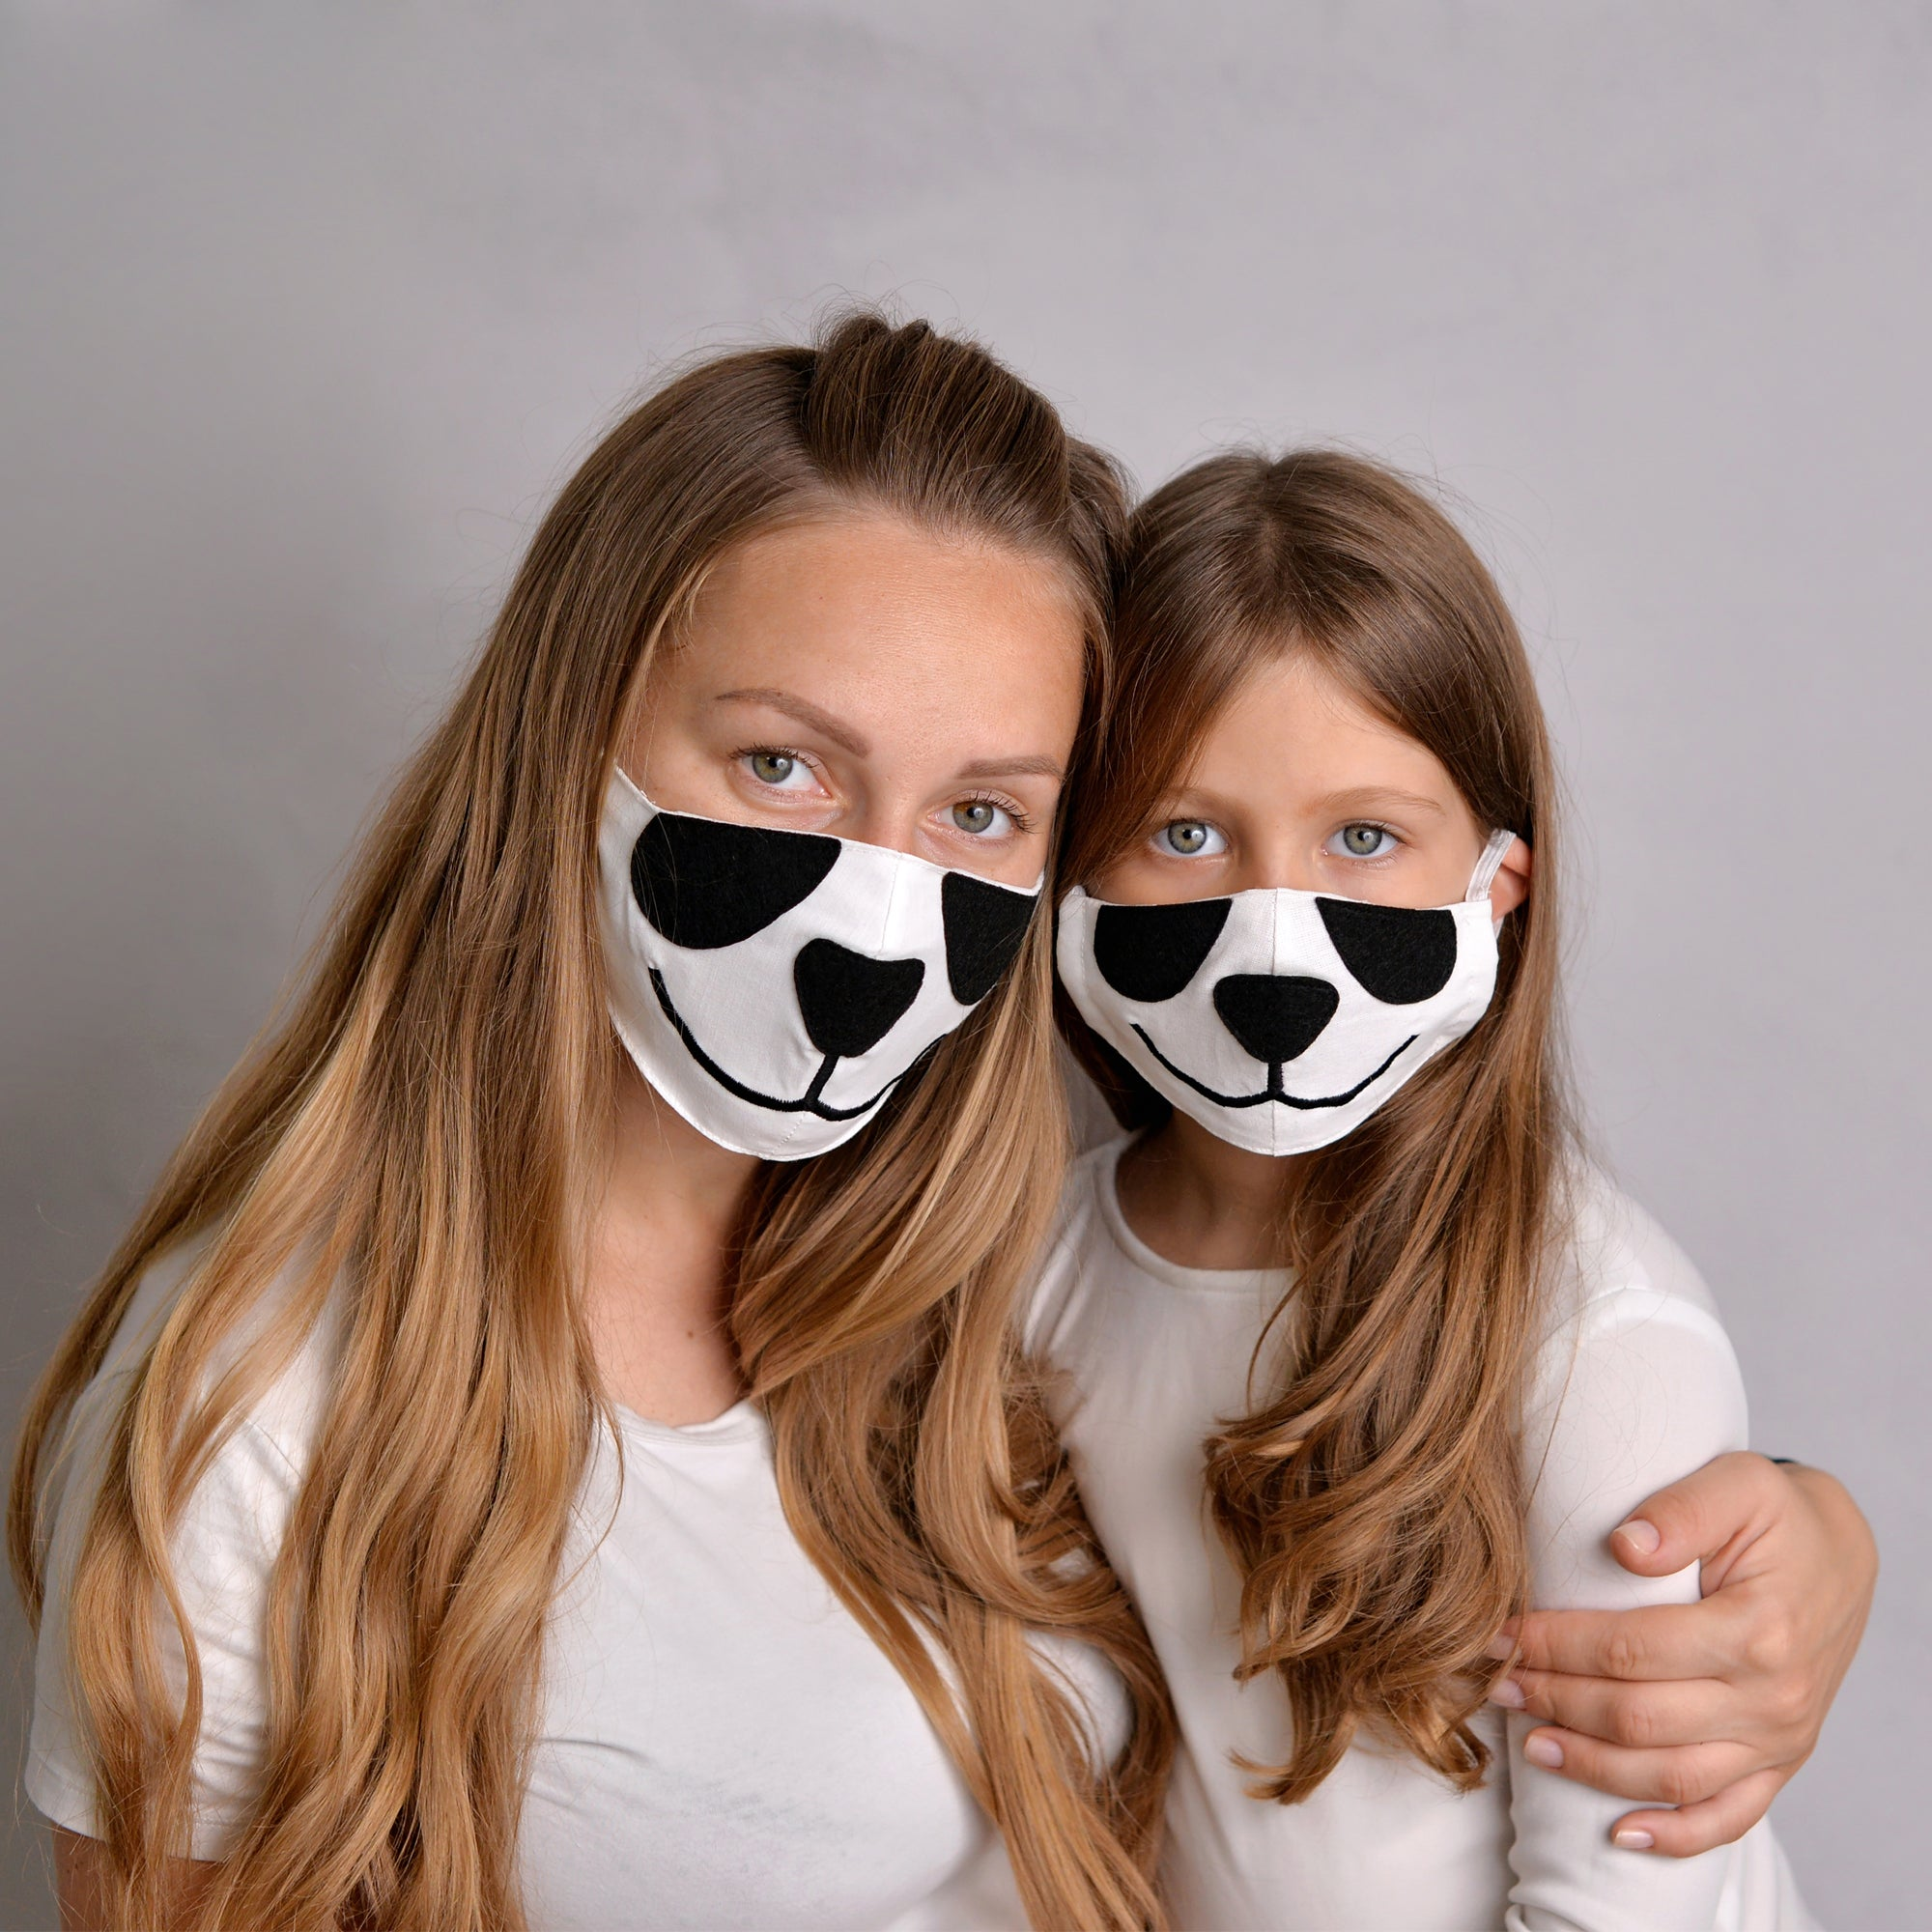 2 Panda Face Masks for parent and kid, with filter pockets